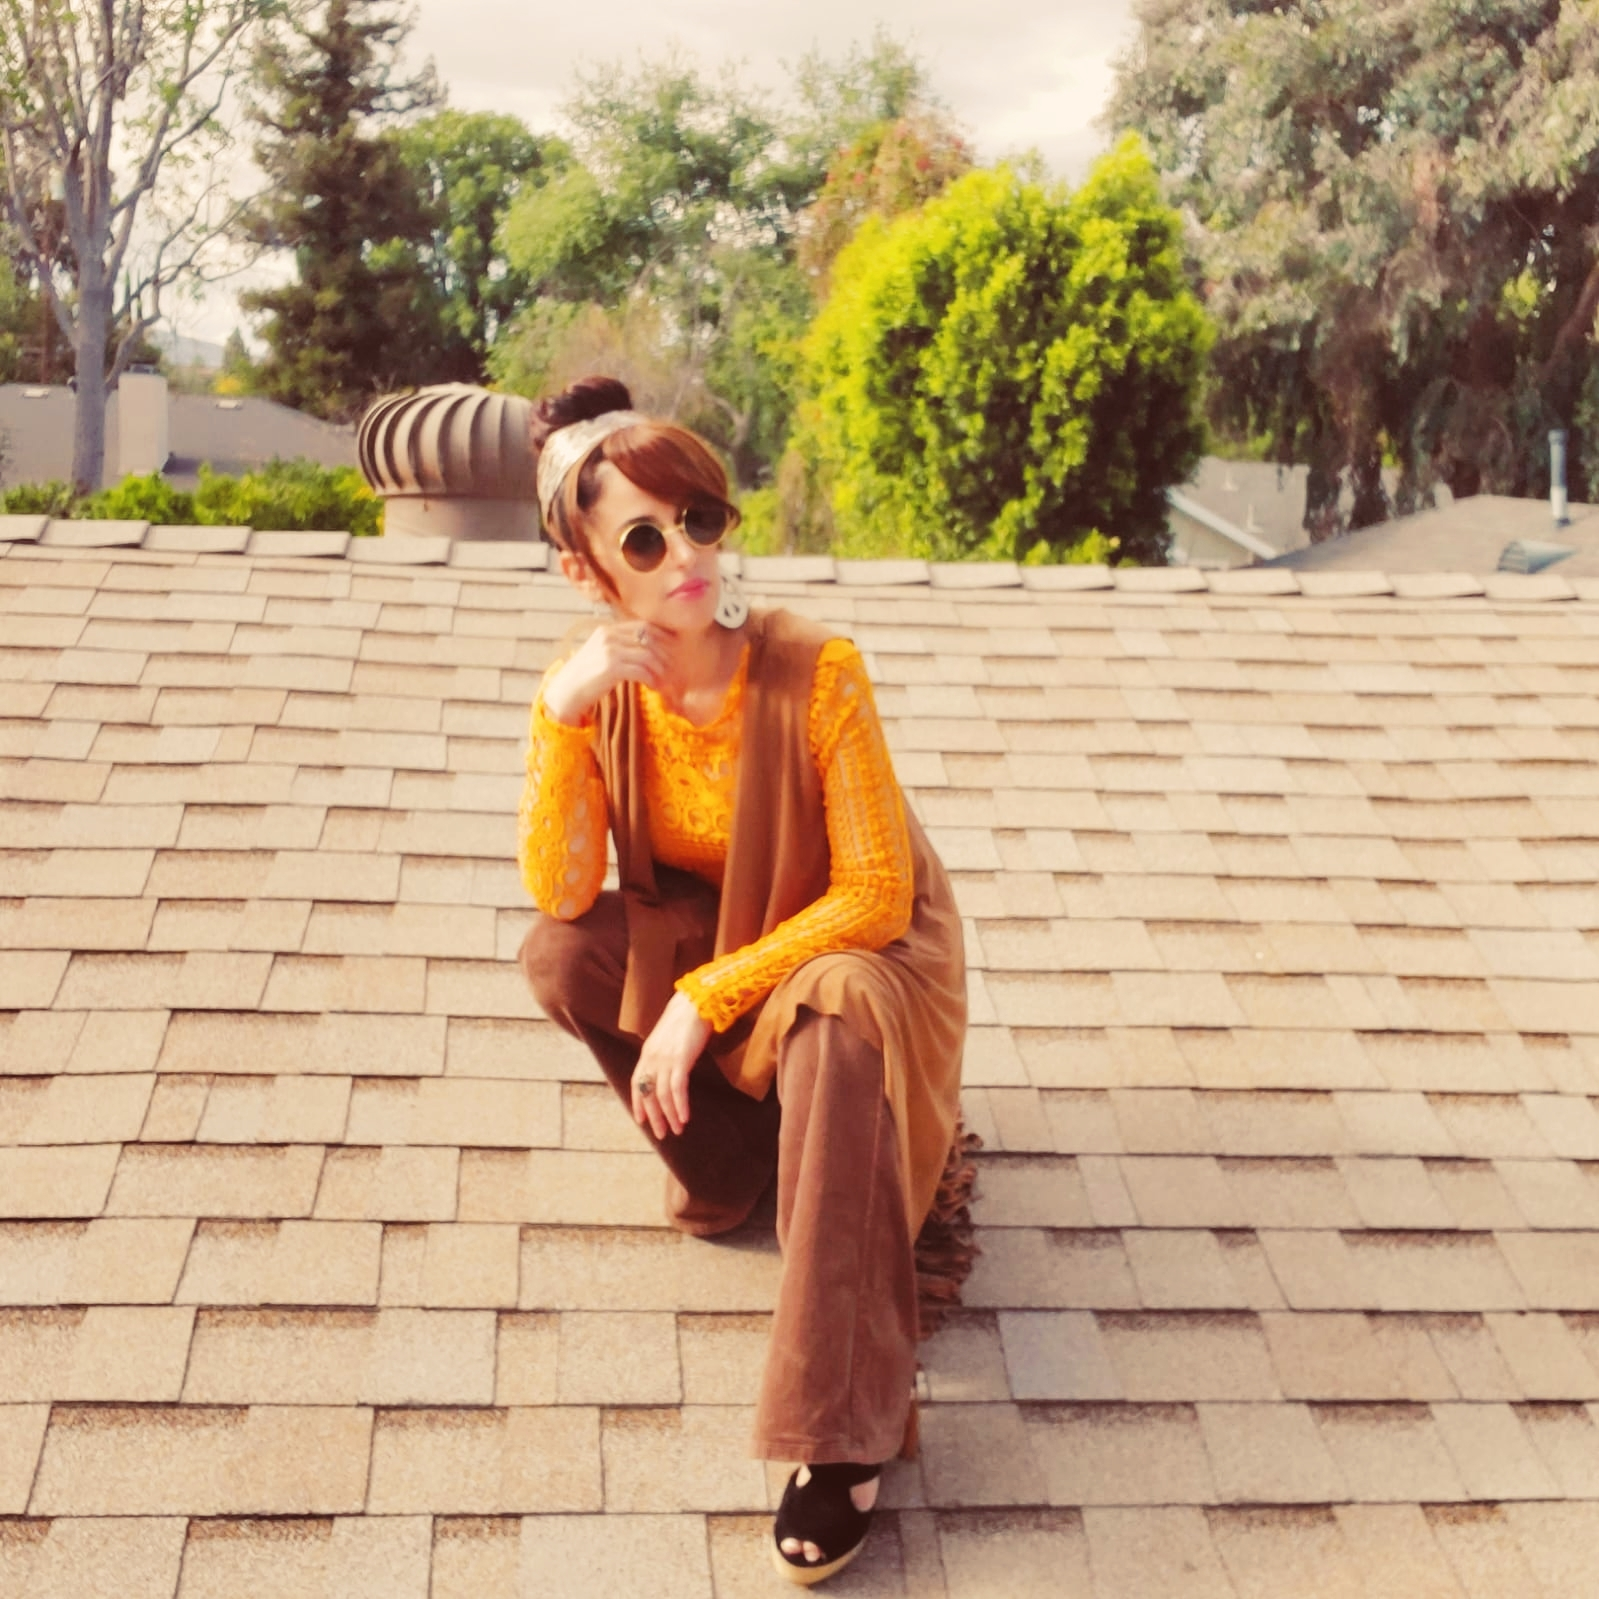 70's look, girl on a rooftop - yellow top - brown bell bottom pants